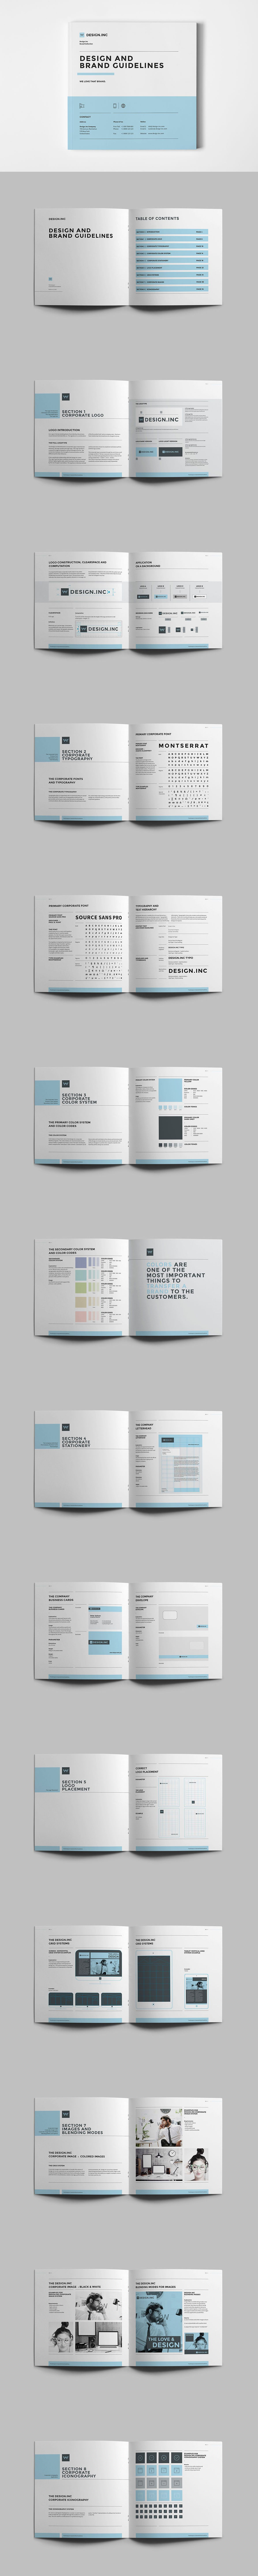 Brand Manual and Identity 36 Pages Template InDesign INDD | Brand ...